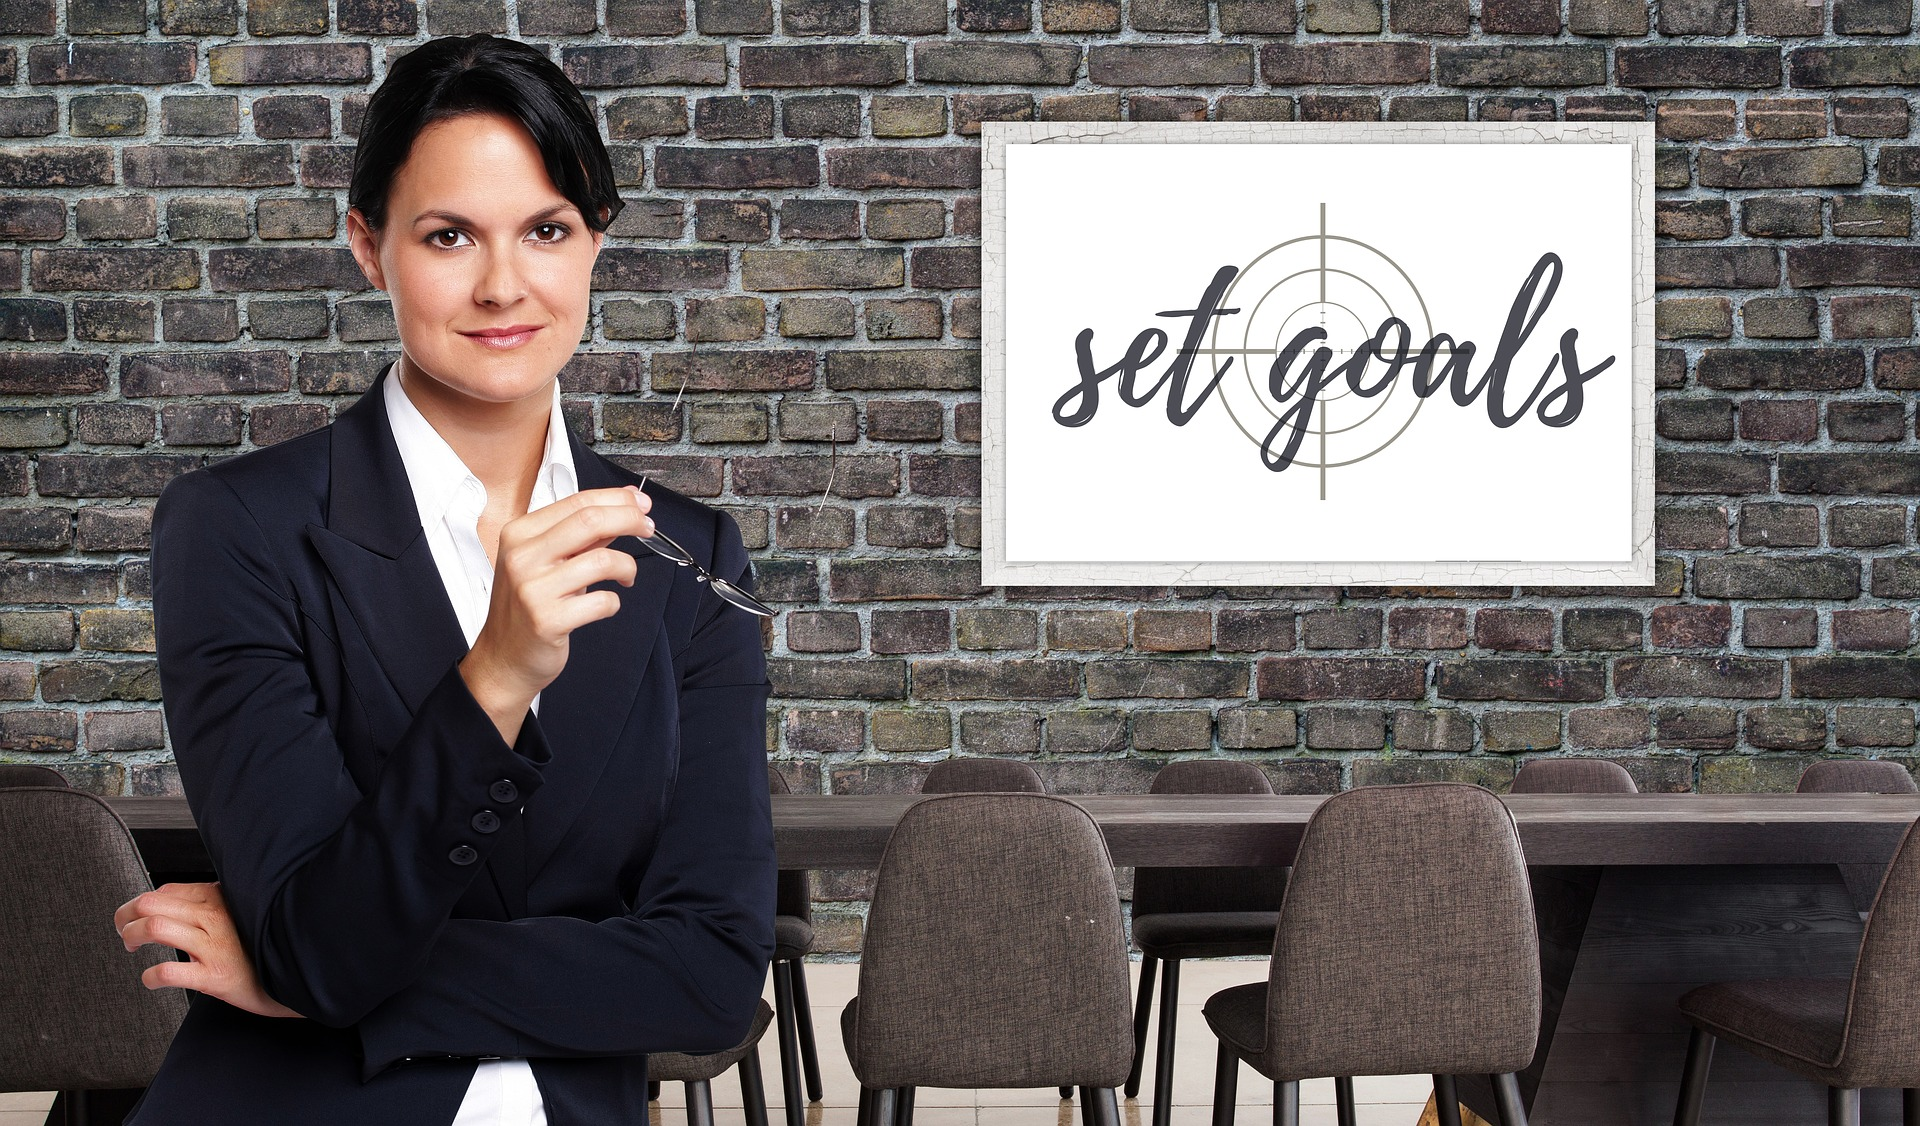 photo of a businesswoman in front of a set goals sign